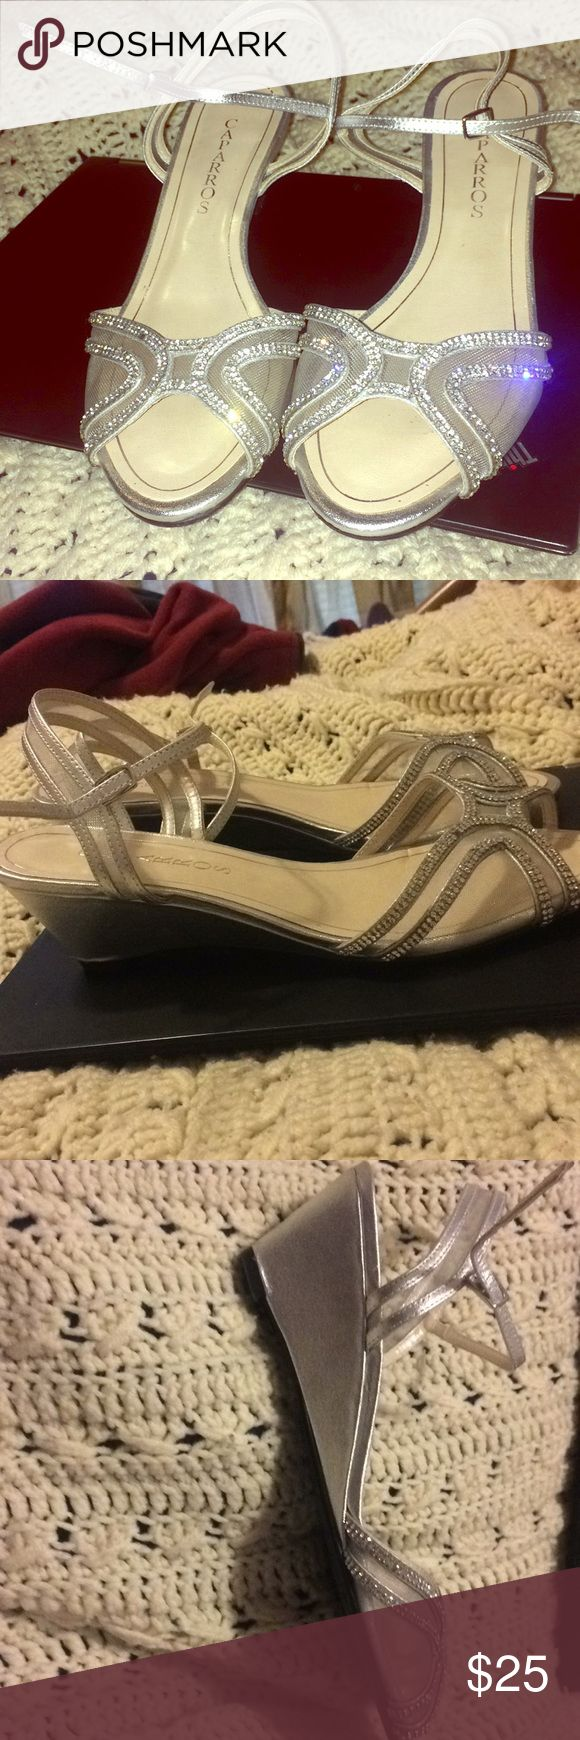 I don't need this beautiful pair of shoes anymore! Beautiful, silver sparkly shoes that I wore just for my senior prom! They are used but still look great and sparkly. Heels are about an inch. Caparros Shoes Wedges #promheelssparkly